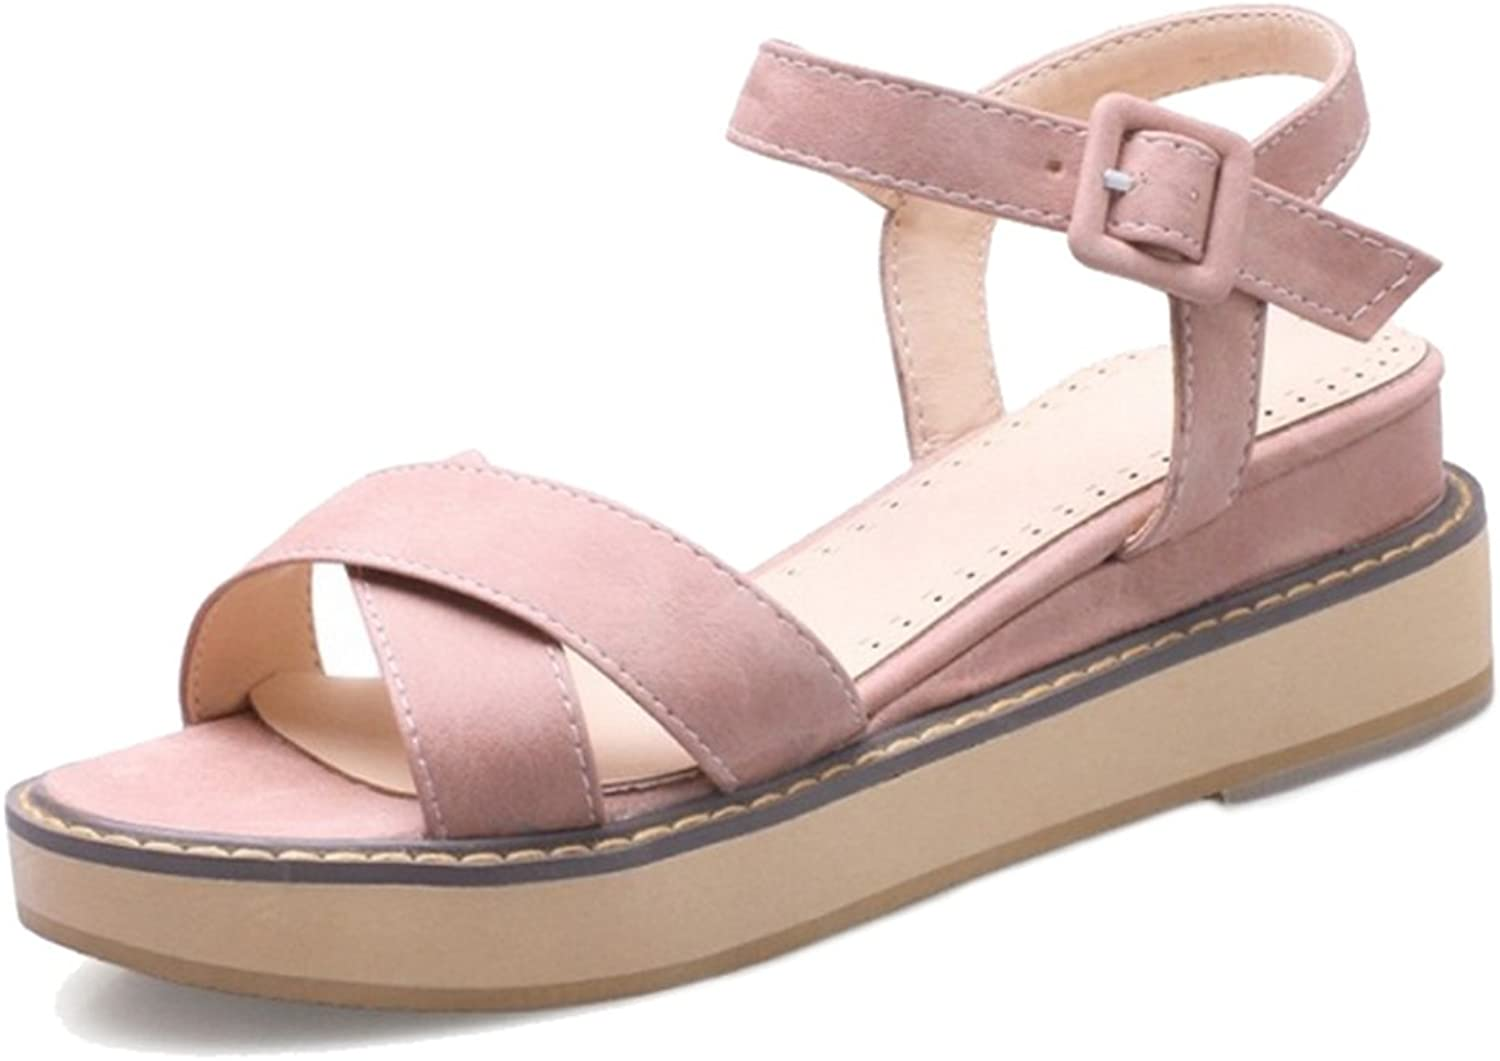 Smilice Sandals with Thick Platform and Nubuck Materail Casual Women Sandals for Fashion Women